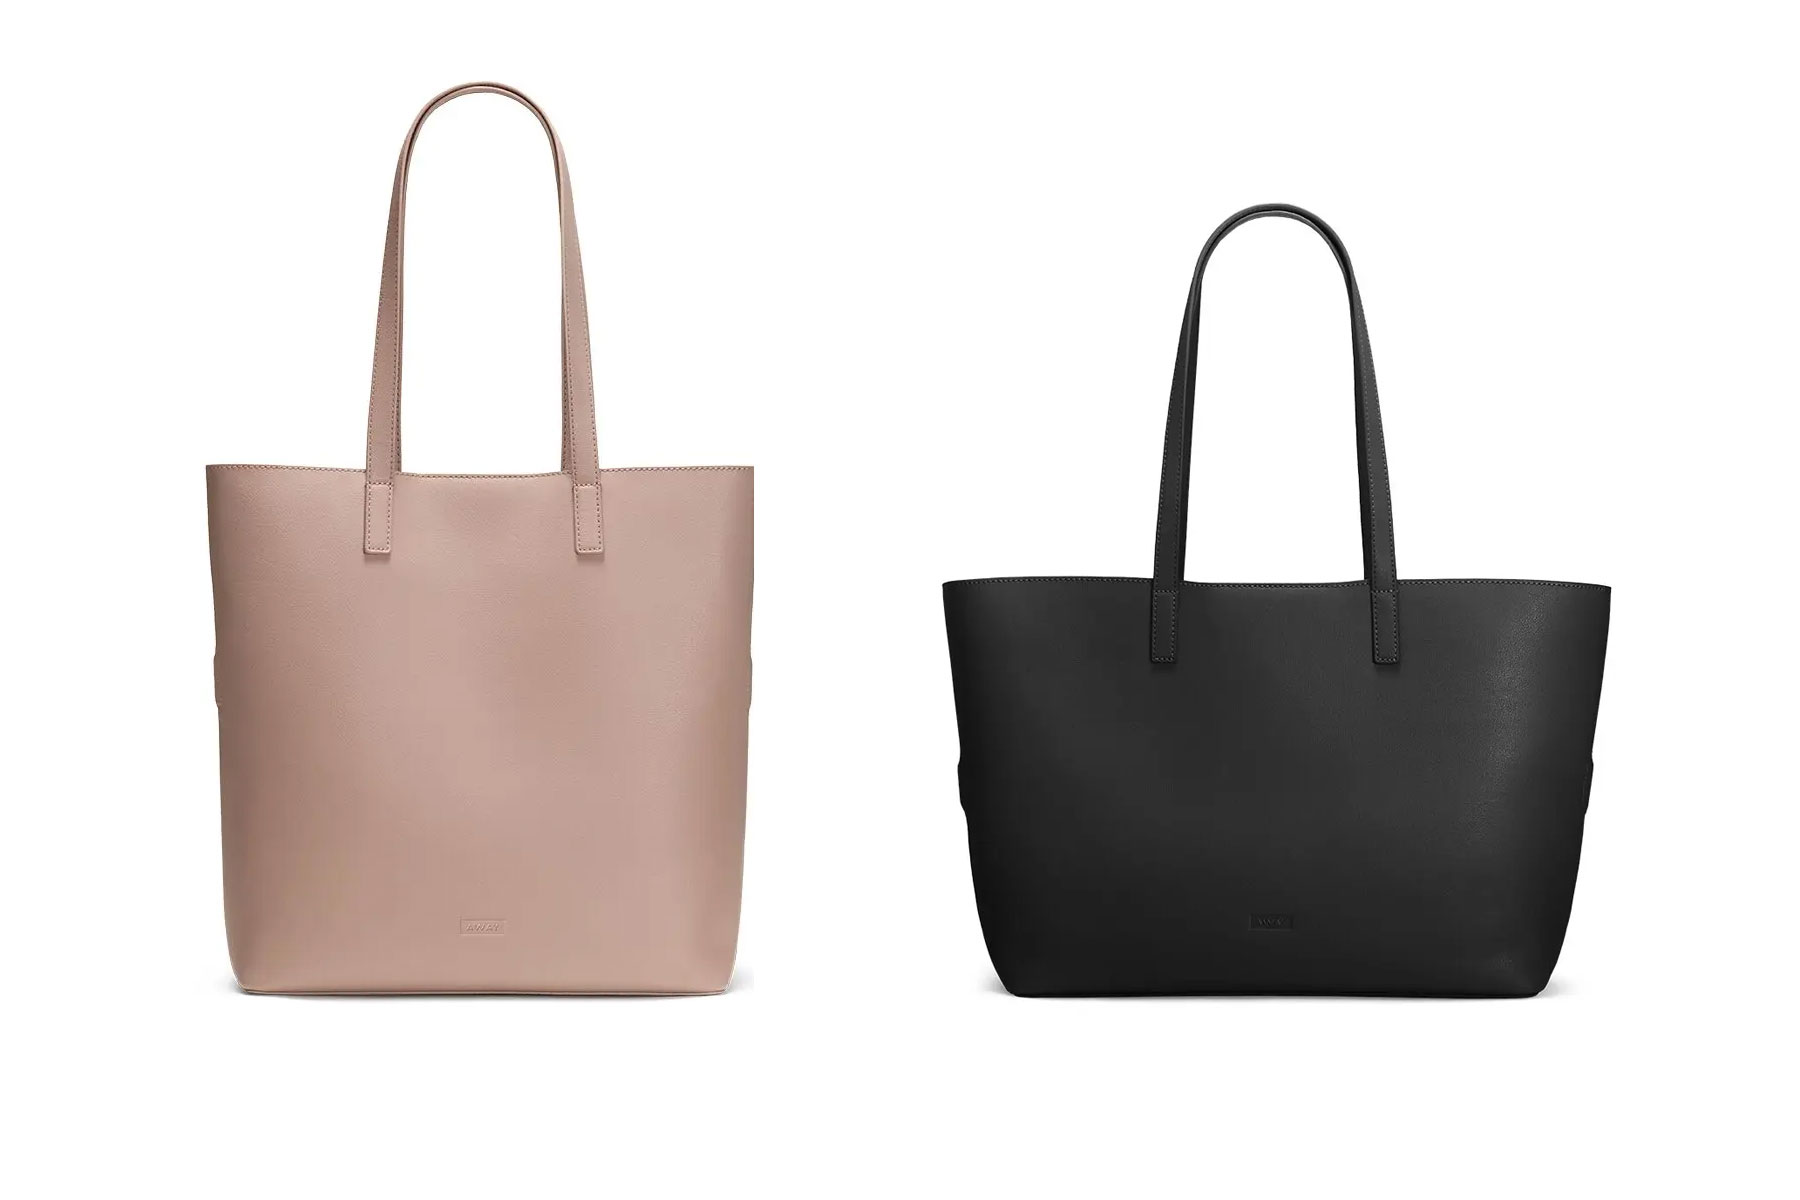 Blush pink and black leather totes